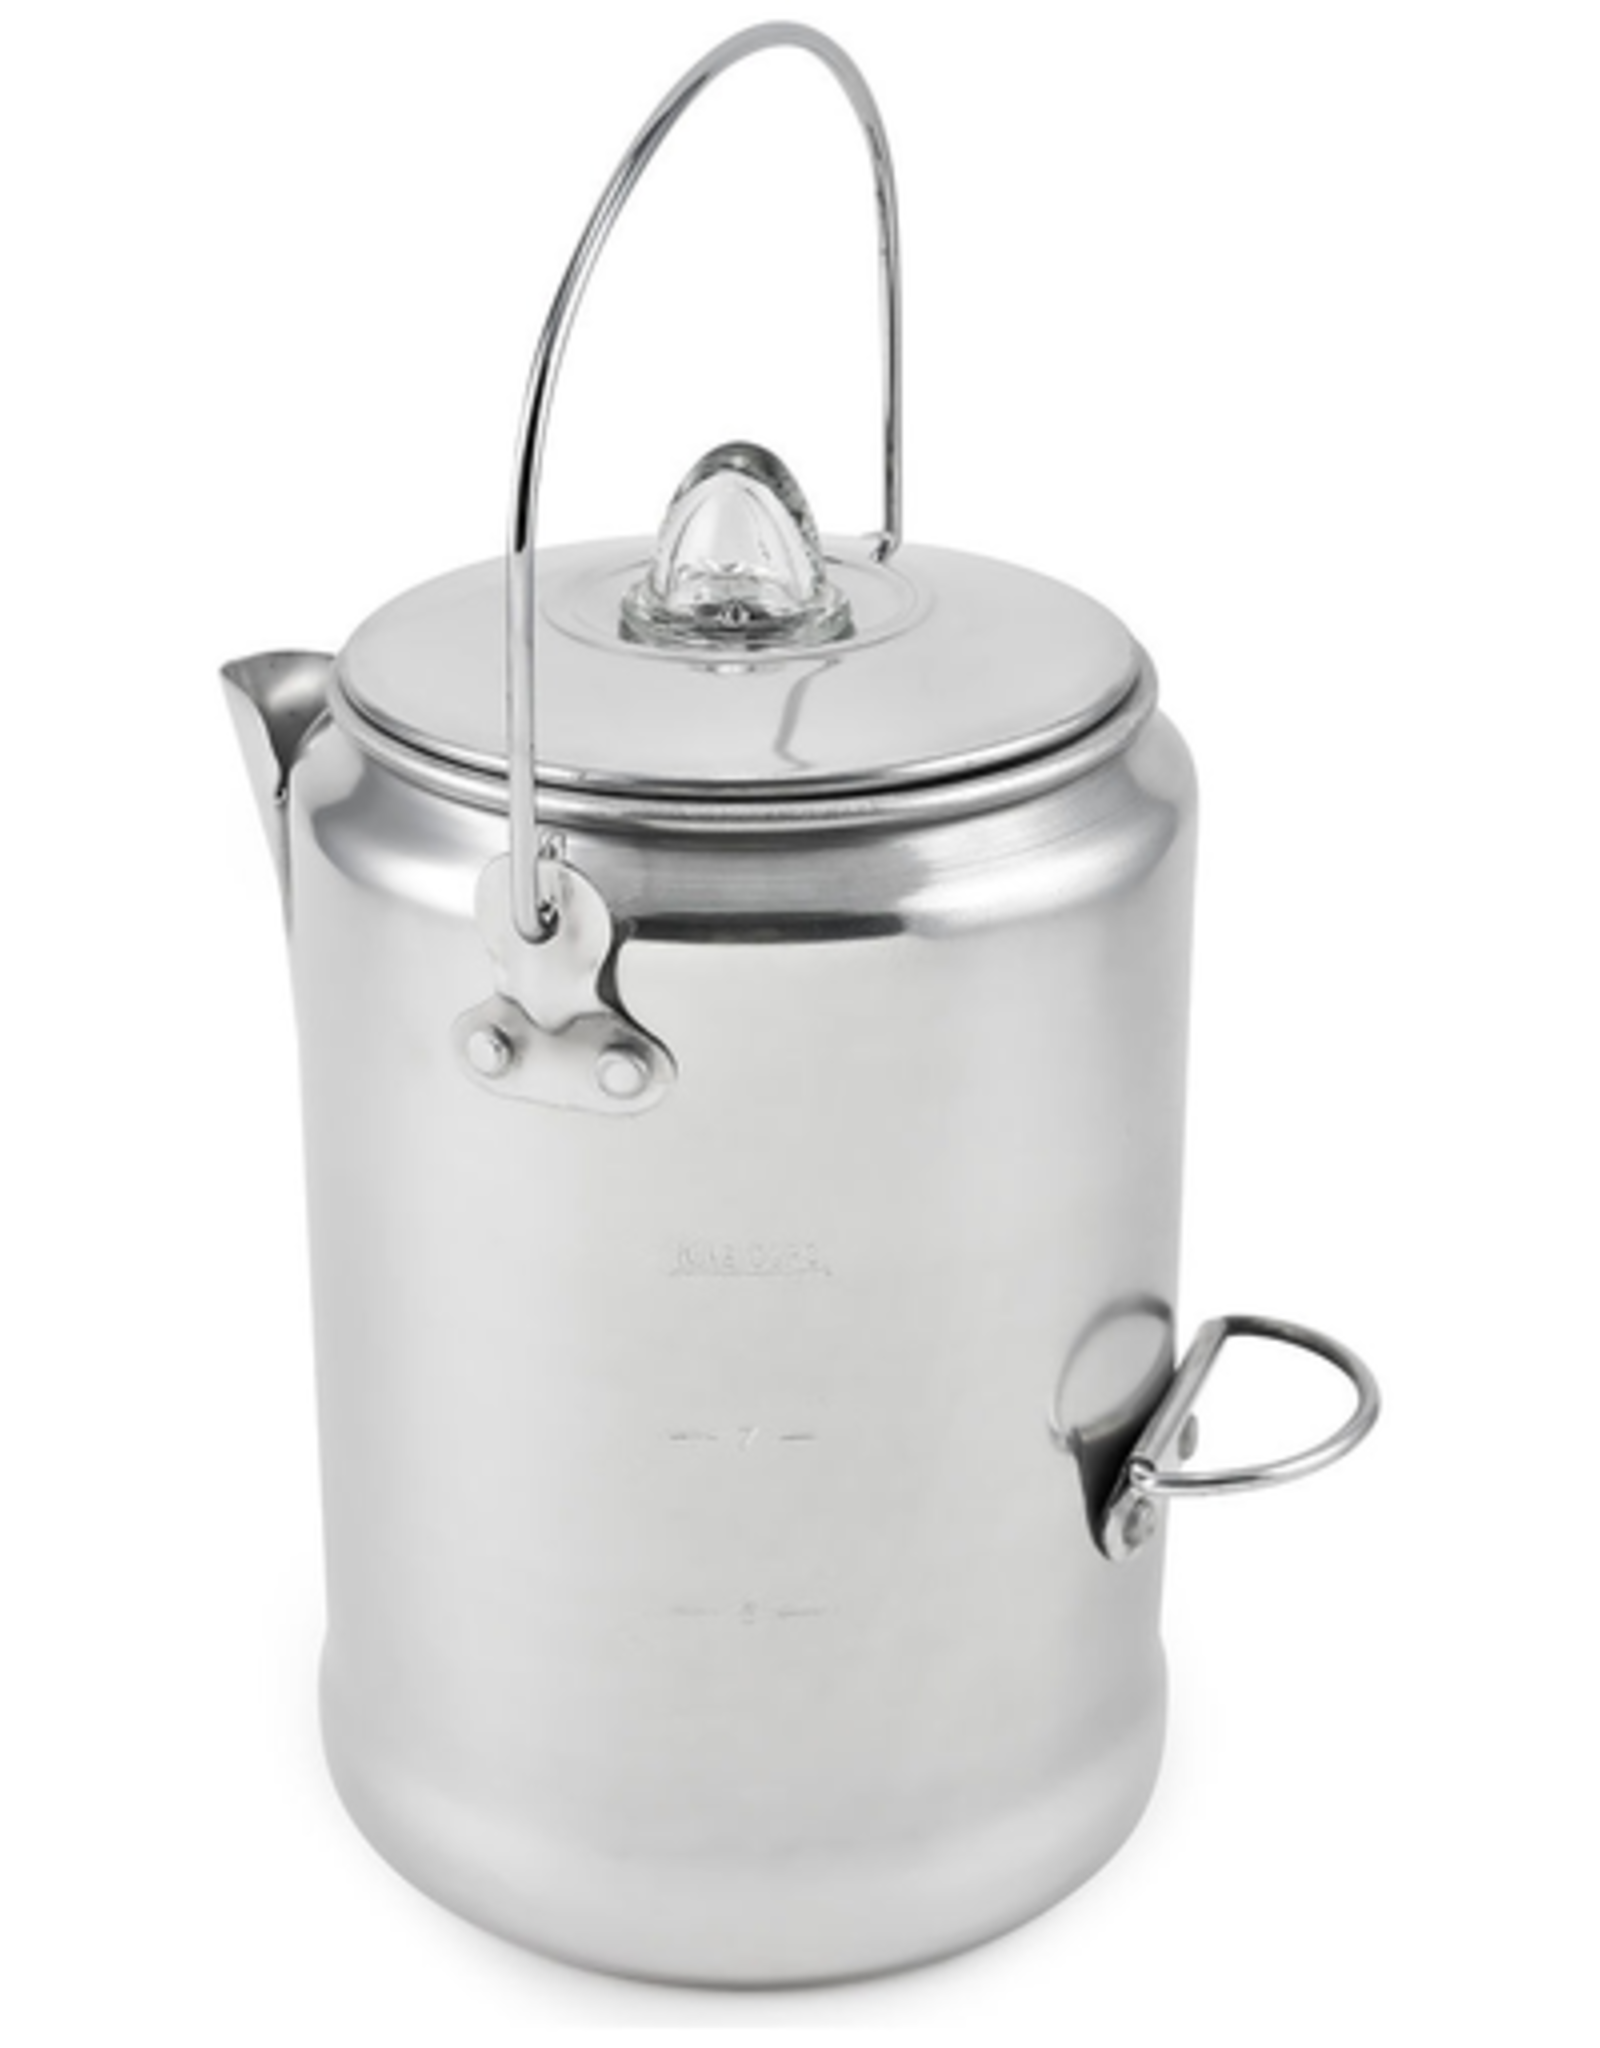 Chinook Chinook COFFEE PERCOLATOR 20, Aluminum